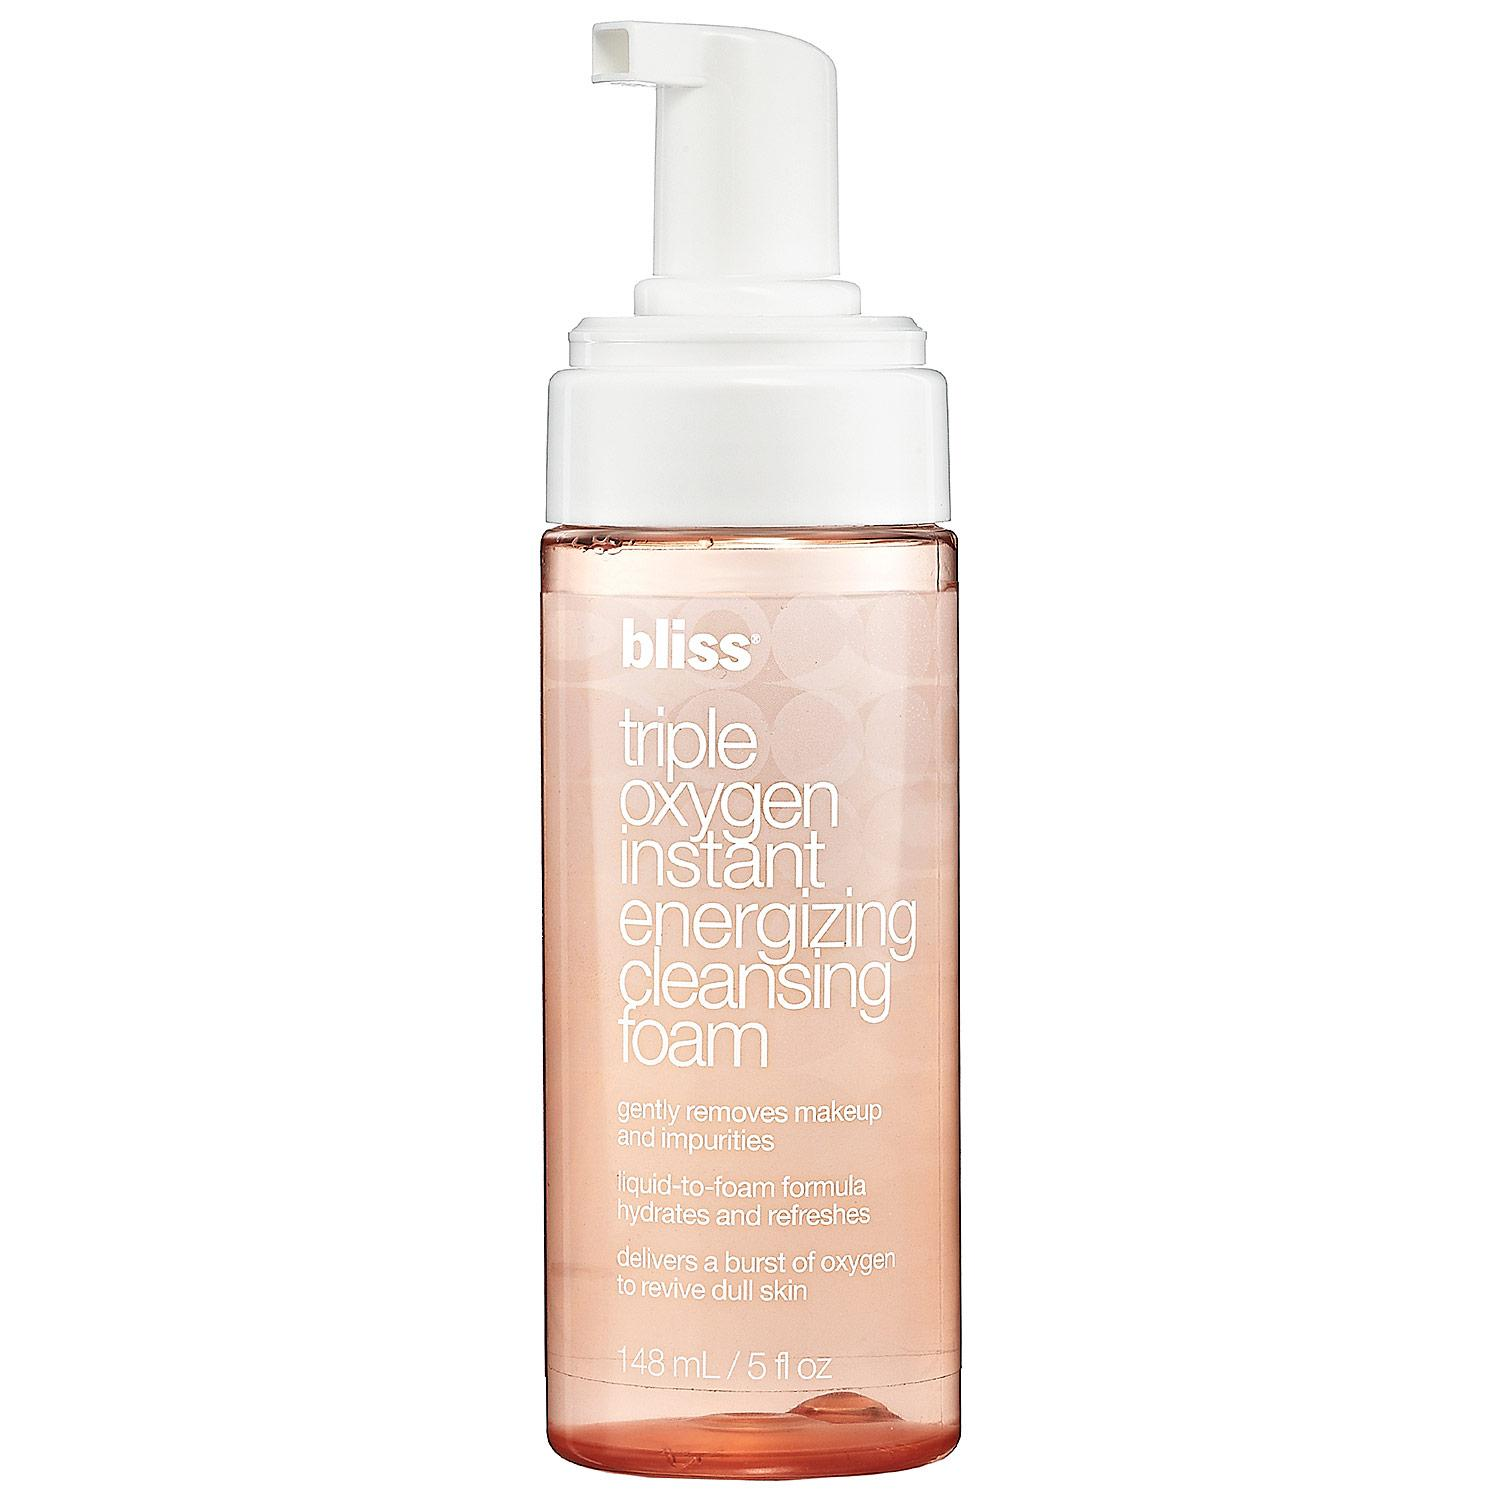 Triple Oxygen Instant Energizing Cleansing Foam